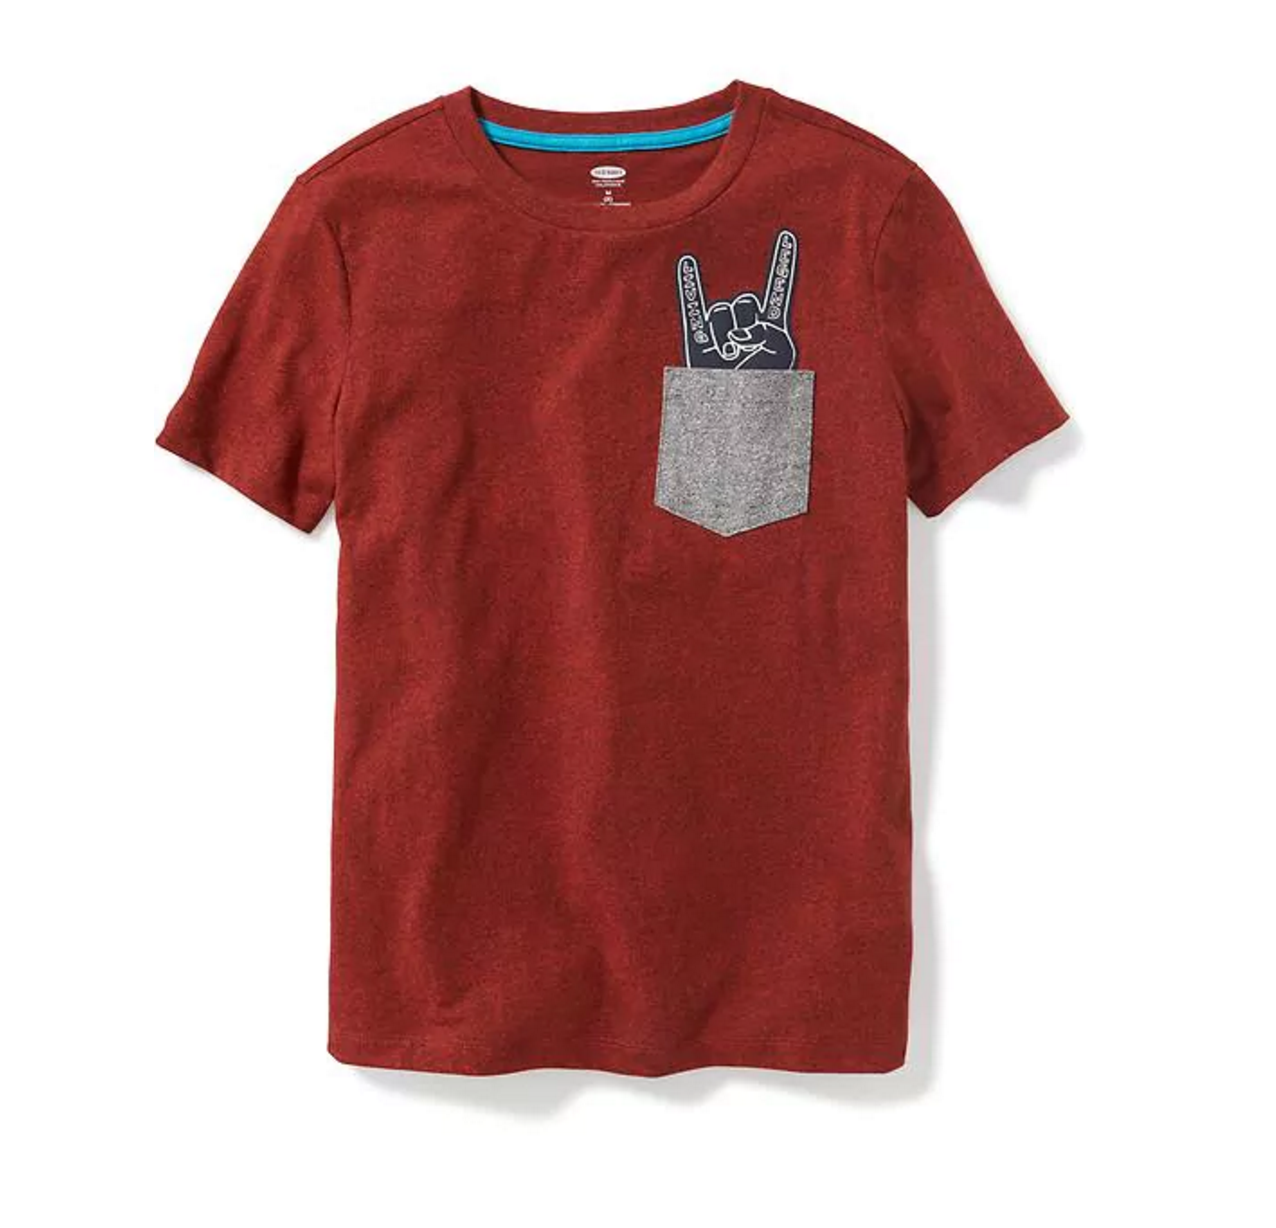 Tanger Outlets Old Navy Outlet boy's graphic tee